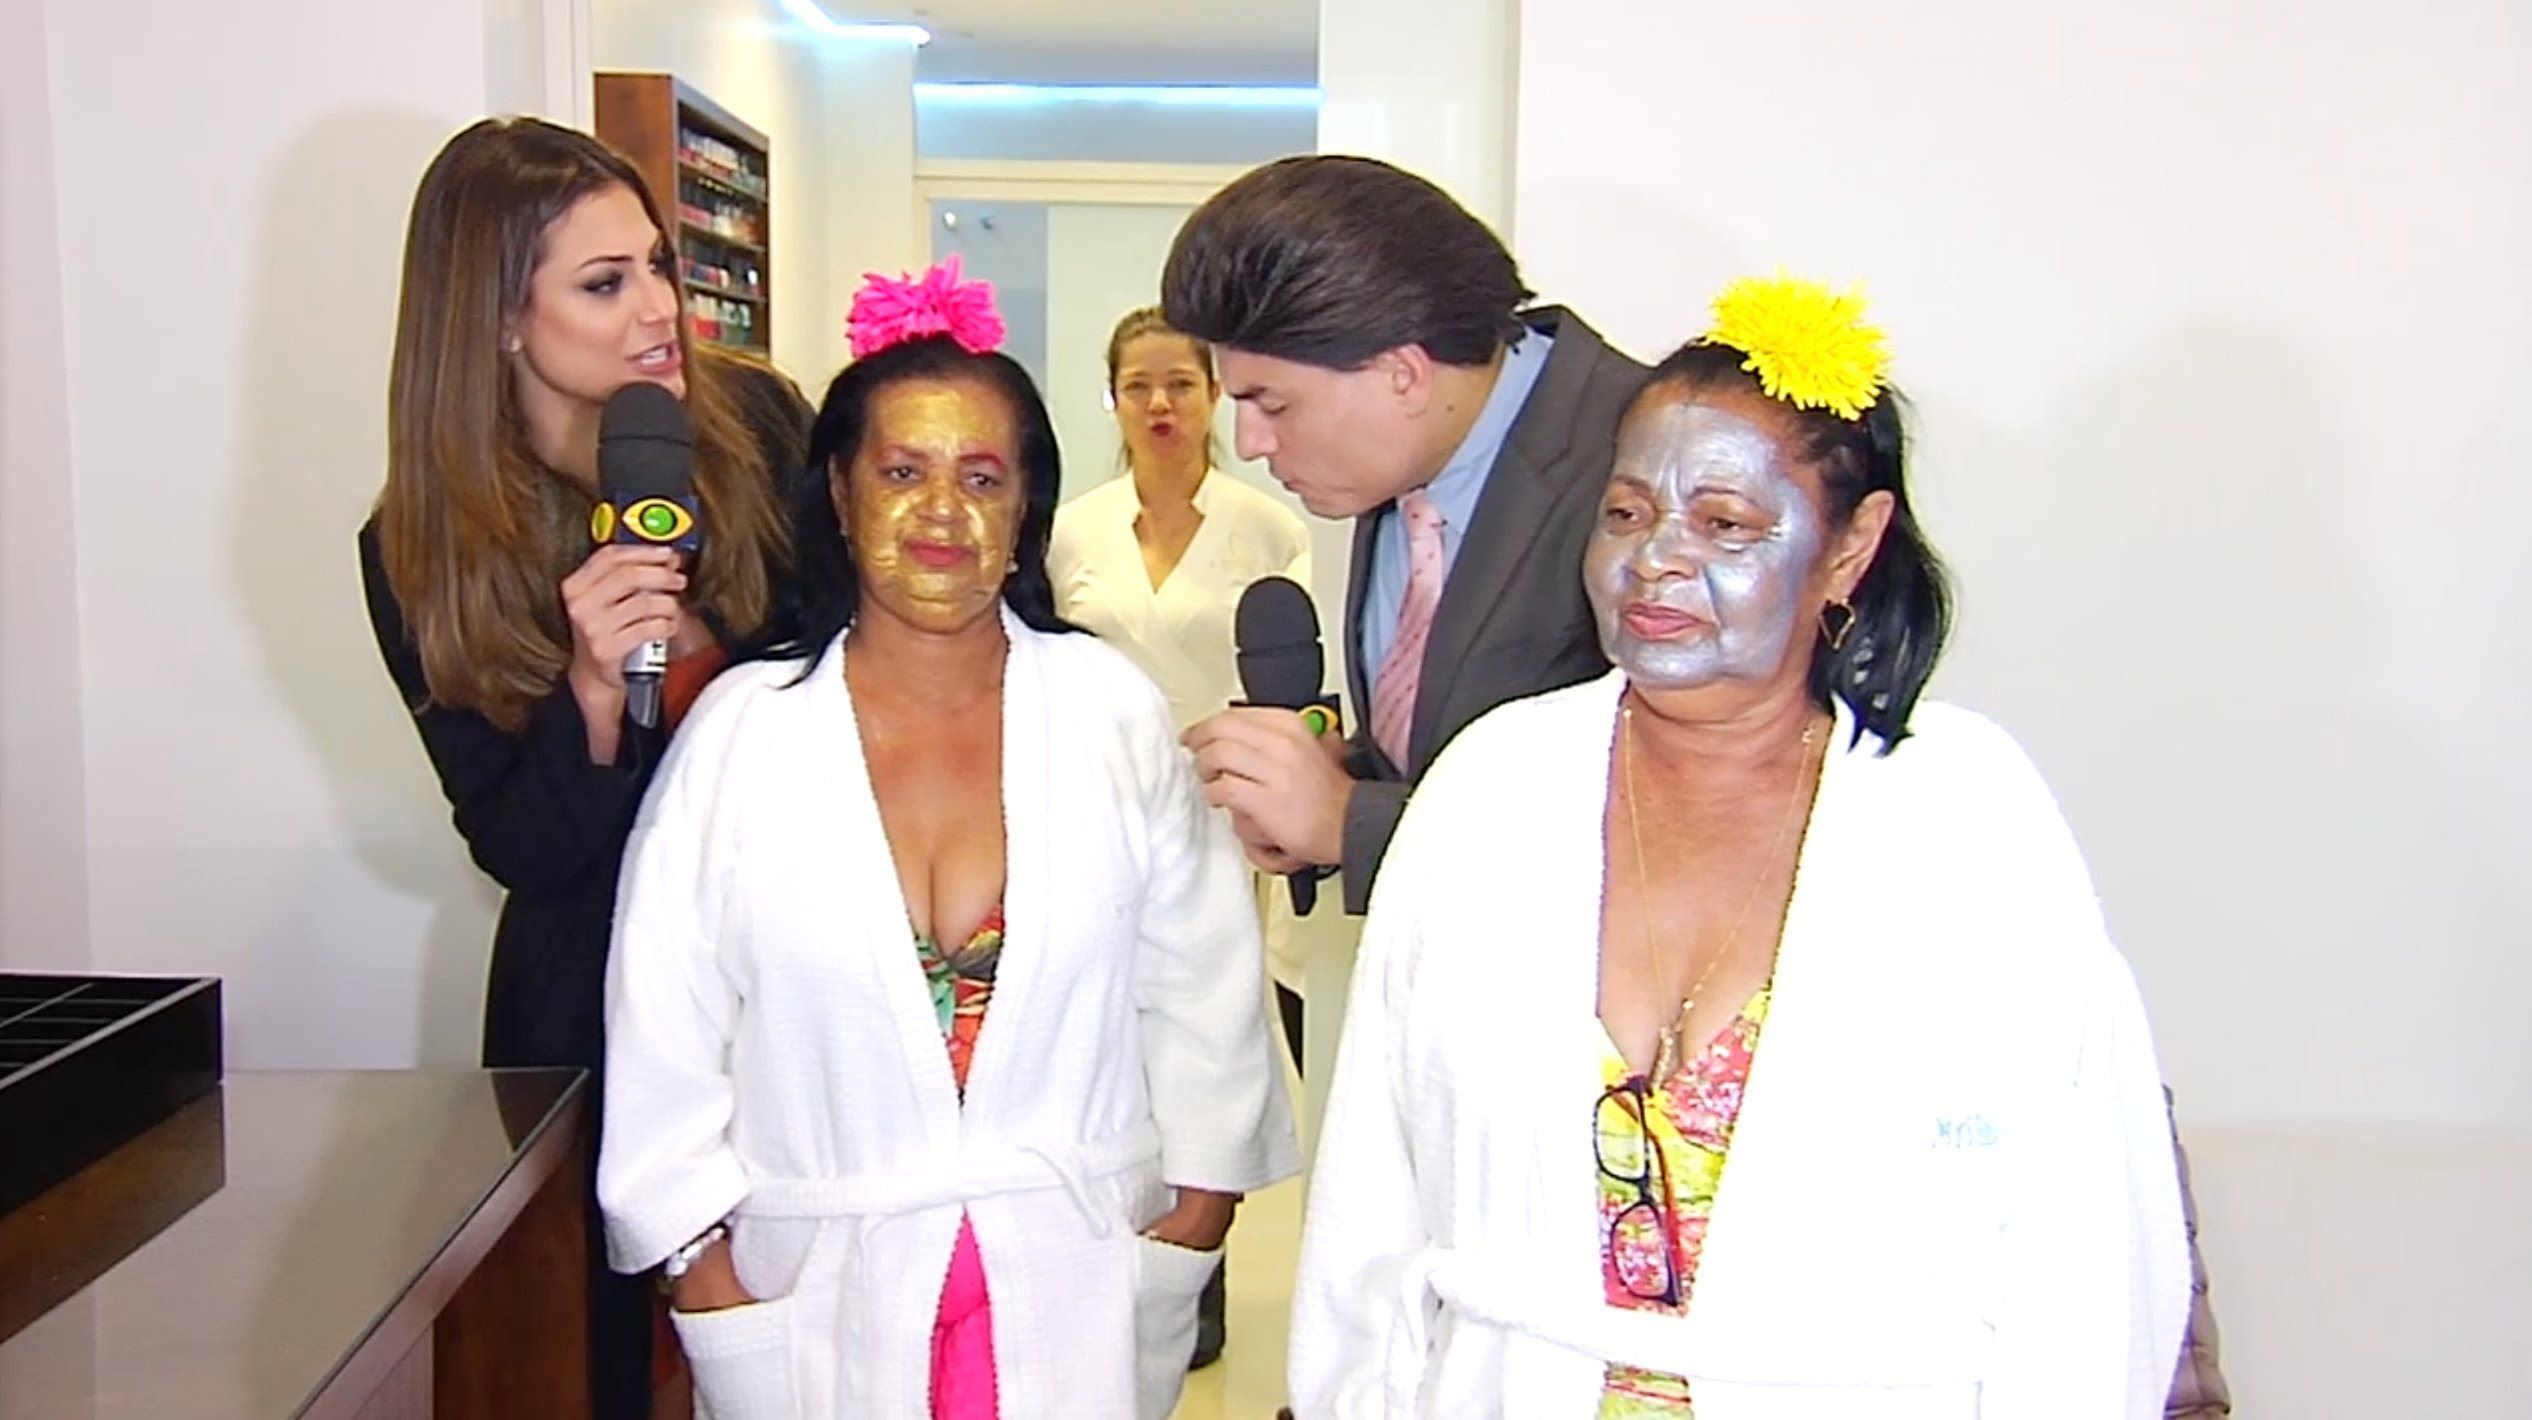 SILVIO E AS GAGAS DE ILHÉUS - E32 (UM AMOR PARA AS GAGAS - RESORT) 01/02